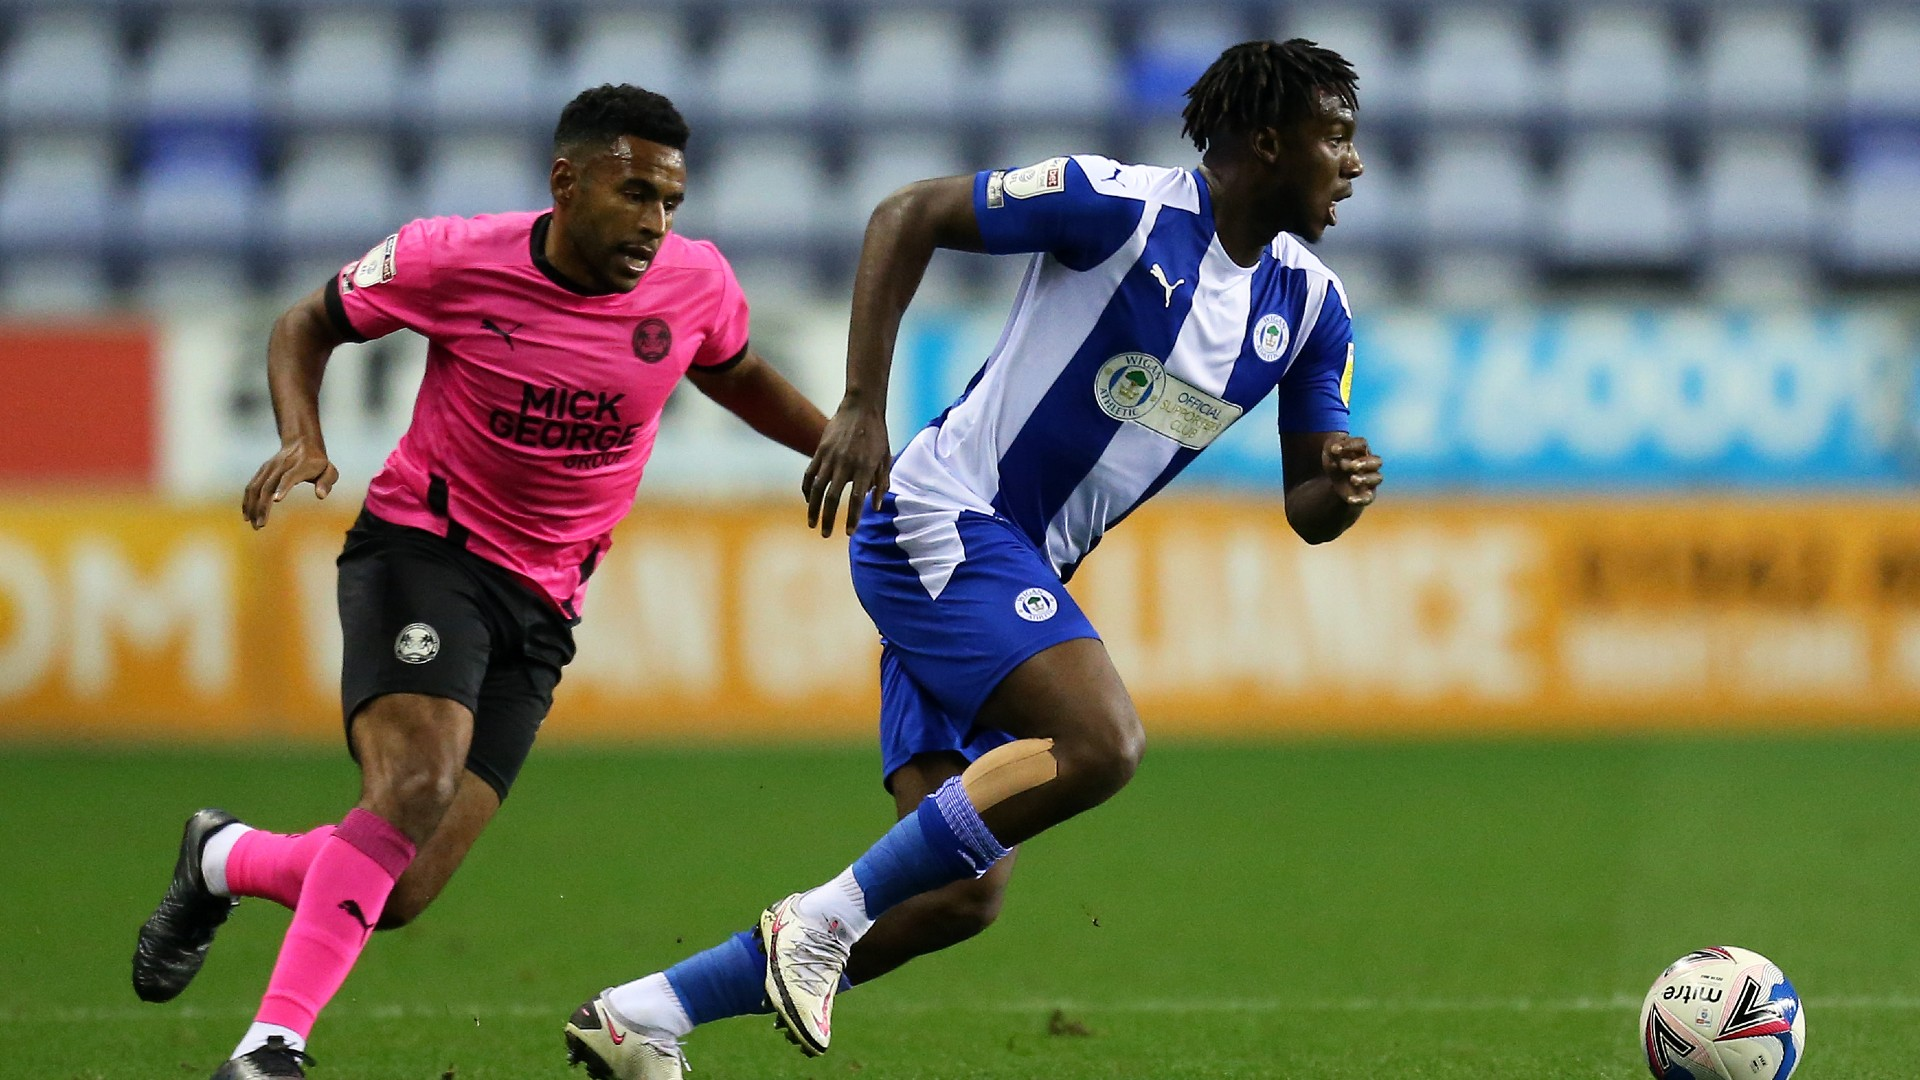 Viv Solomon-Otabor: Wigan Athletic re-sign Anglo-Nigerian winger